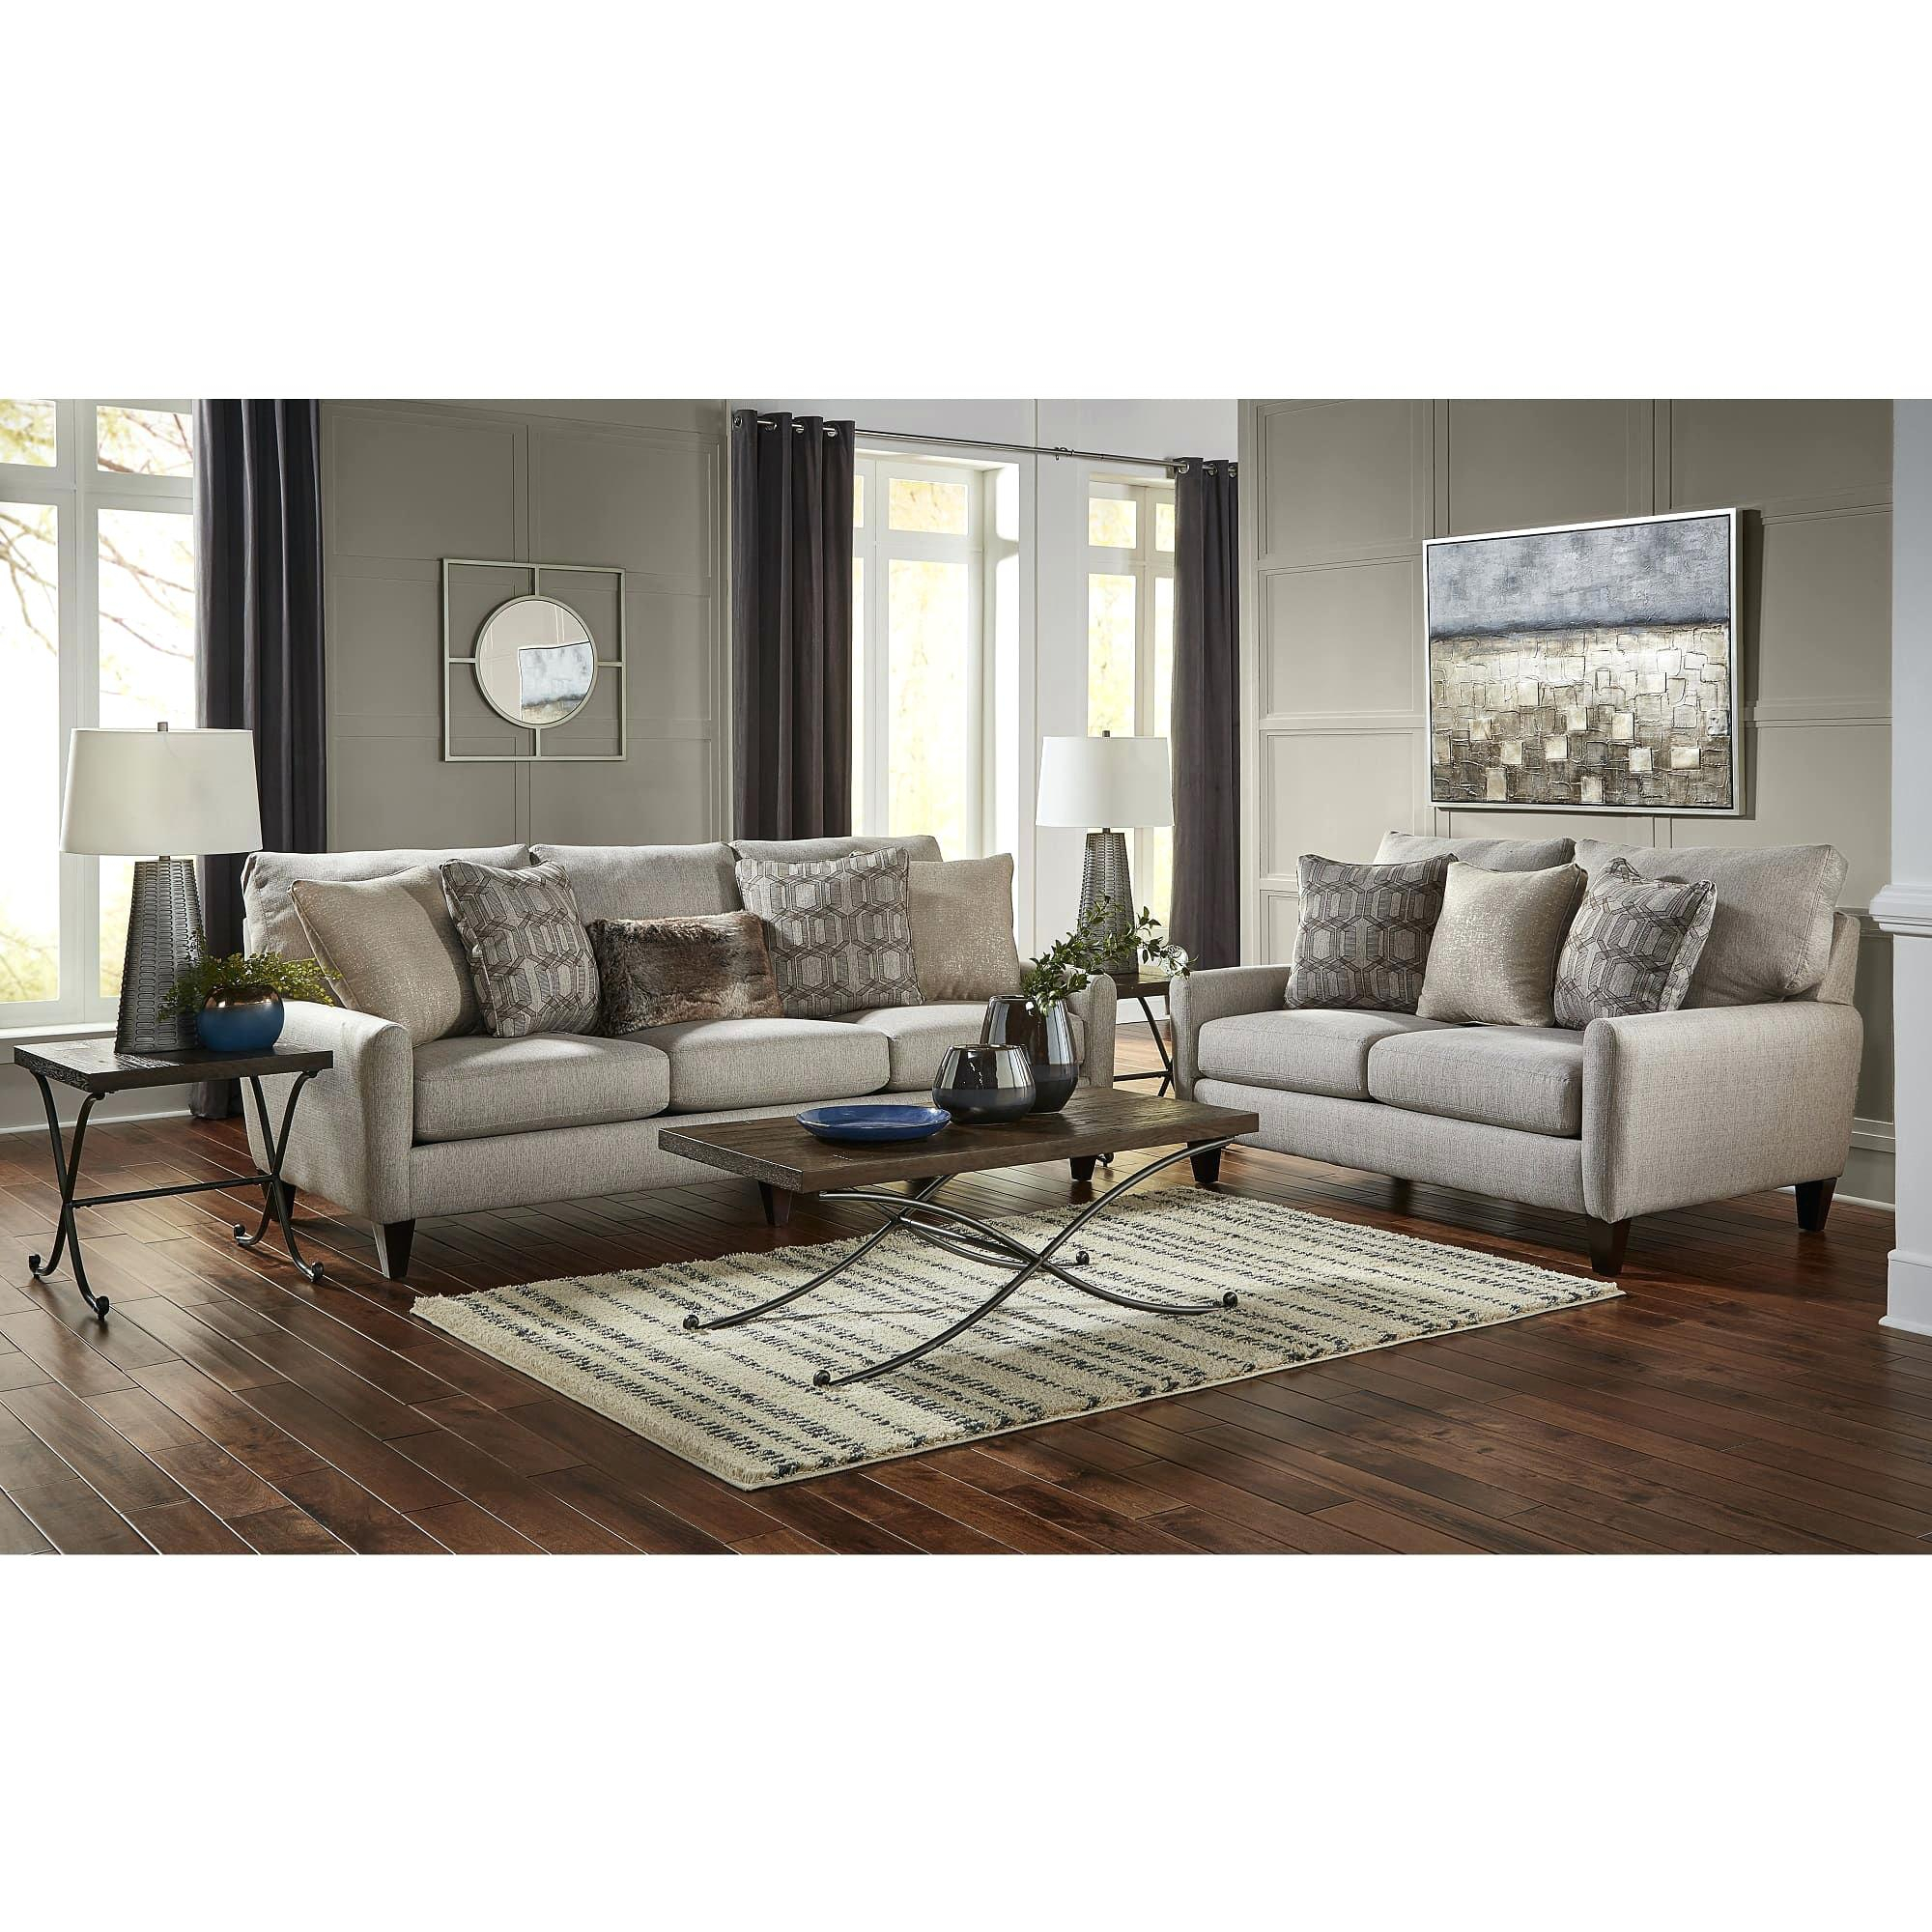 Striking Aarons Furniture Living Room Set Picture Ideas B88506 regarding 15 Some of the Coolest Ideas How to Improve Aarons Living Room Sets